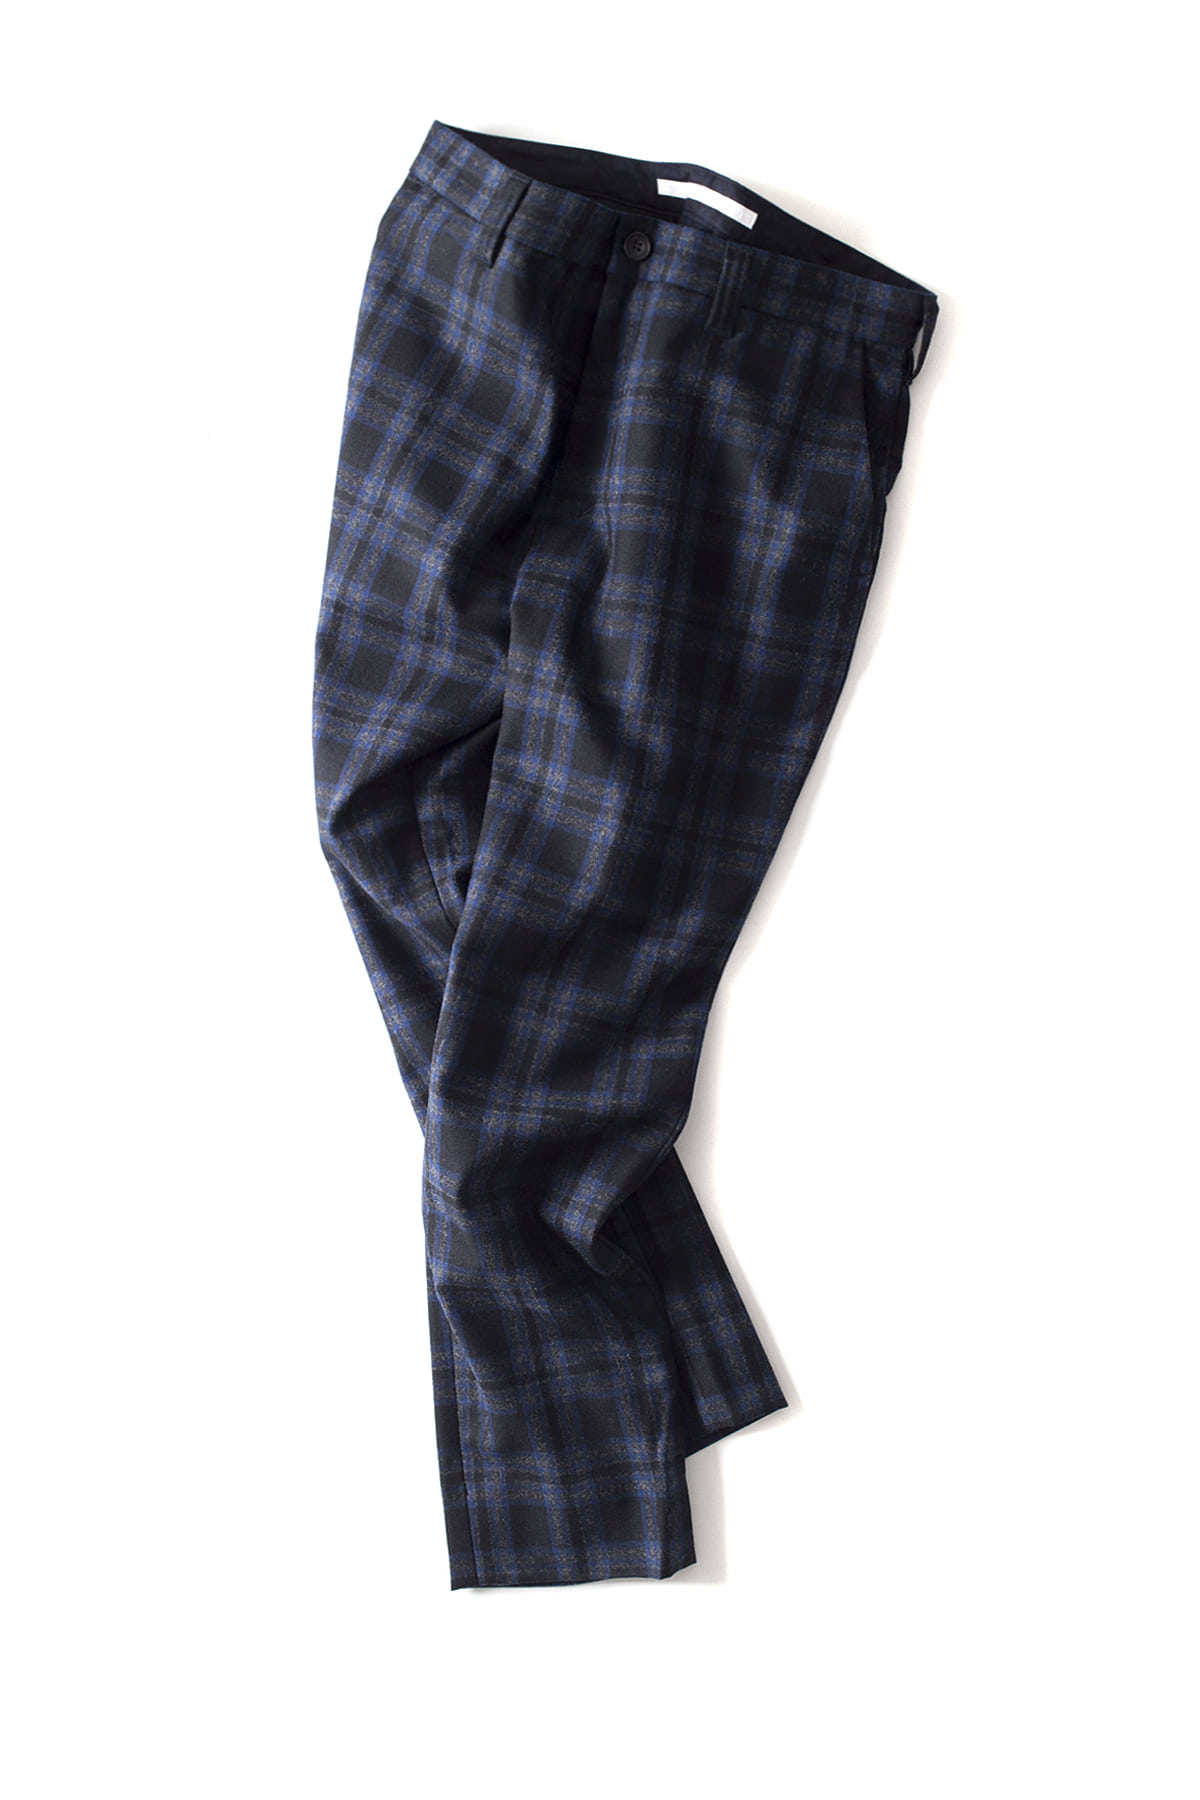 WHITE MOUNTAINEERING : Check Tapered Slacks (Navy)